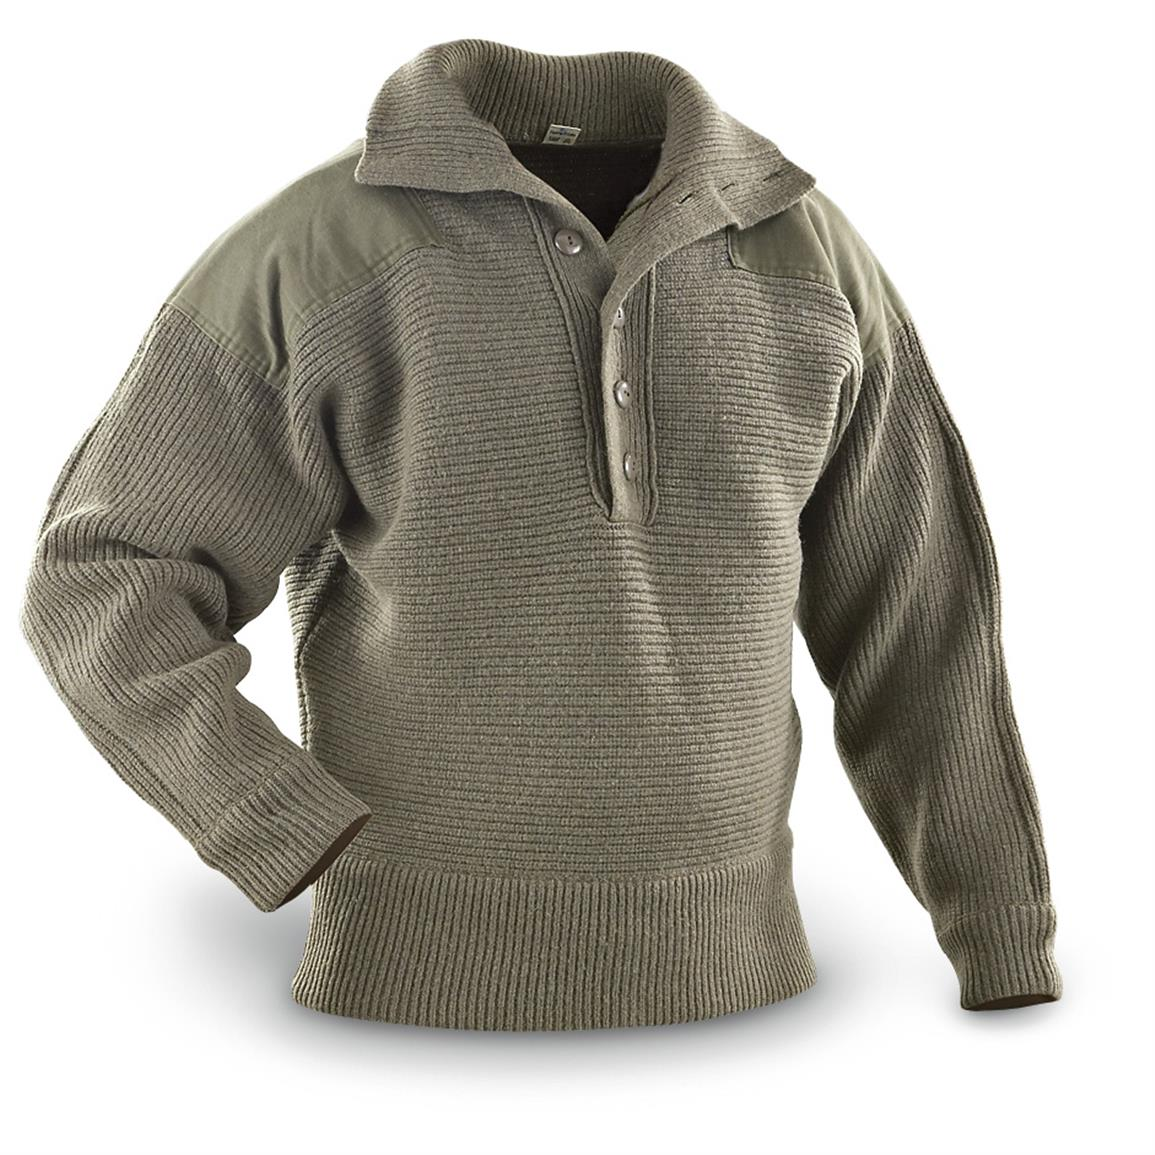 Austrian Military Surplus Heavyweight Wool Sweater, Used - 590727 ...